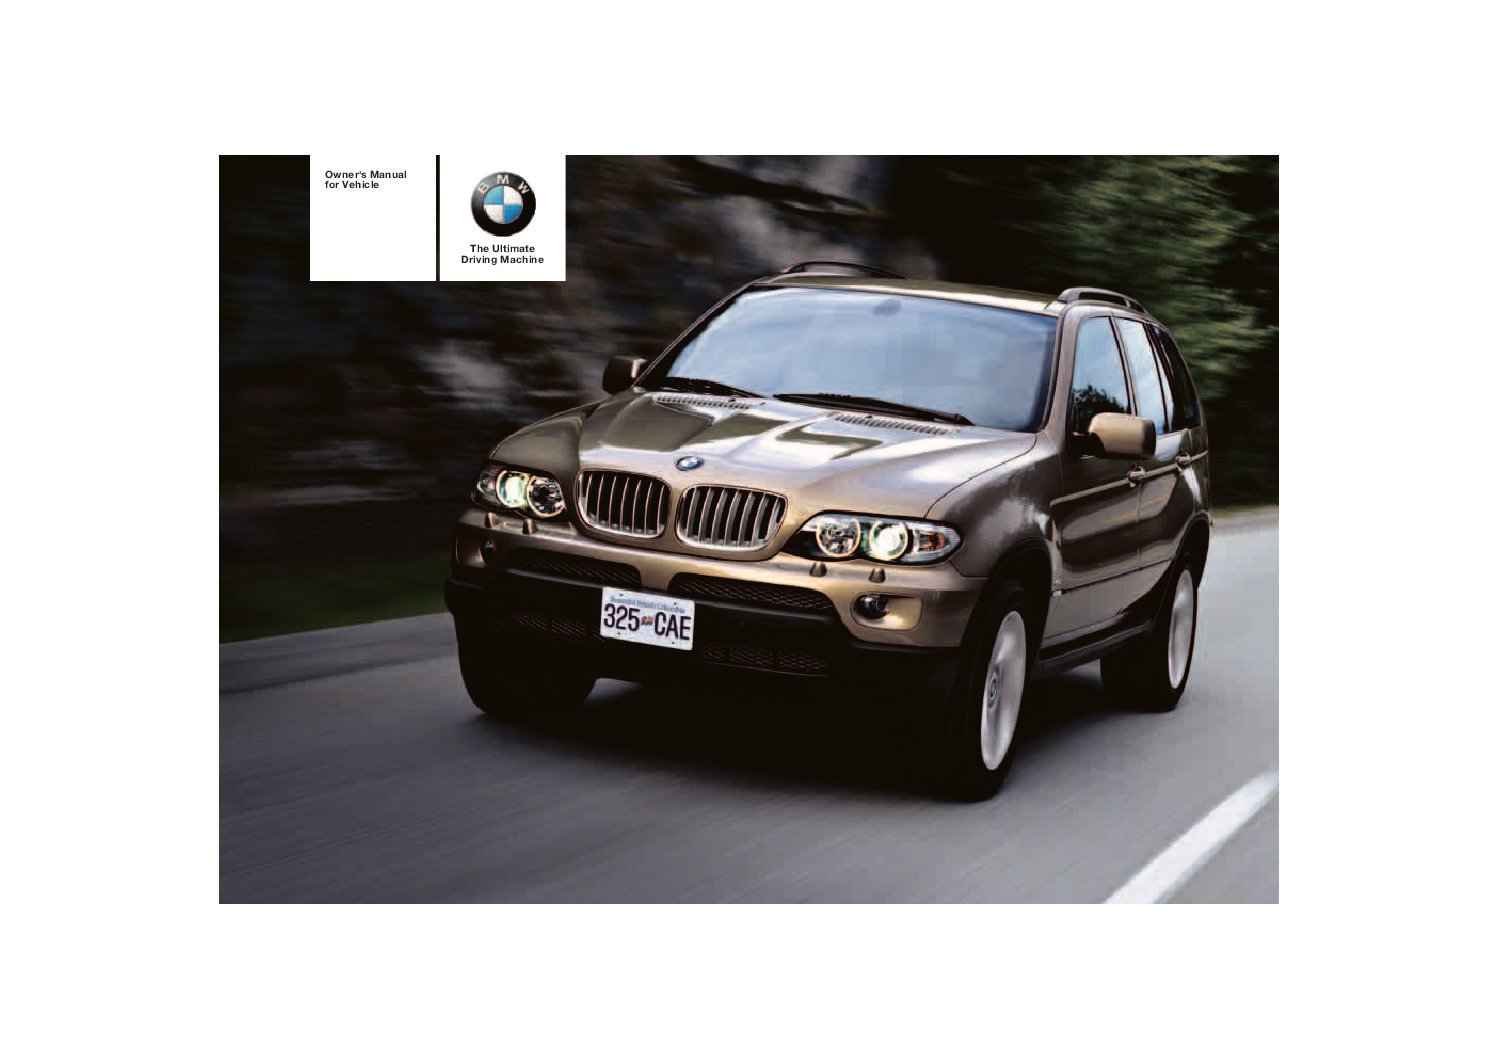 2006 bmw x5 3 0i owners manual just give me the damn manual rh justgivemethedamnmanual com 2001 bmw x5 4.4i owners manual BMW X3